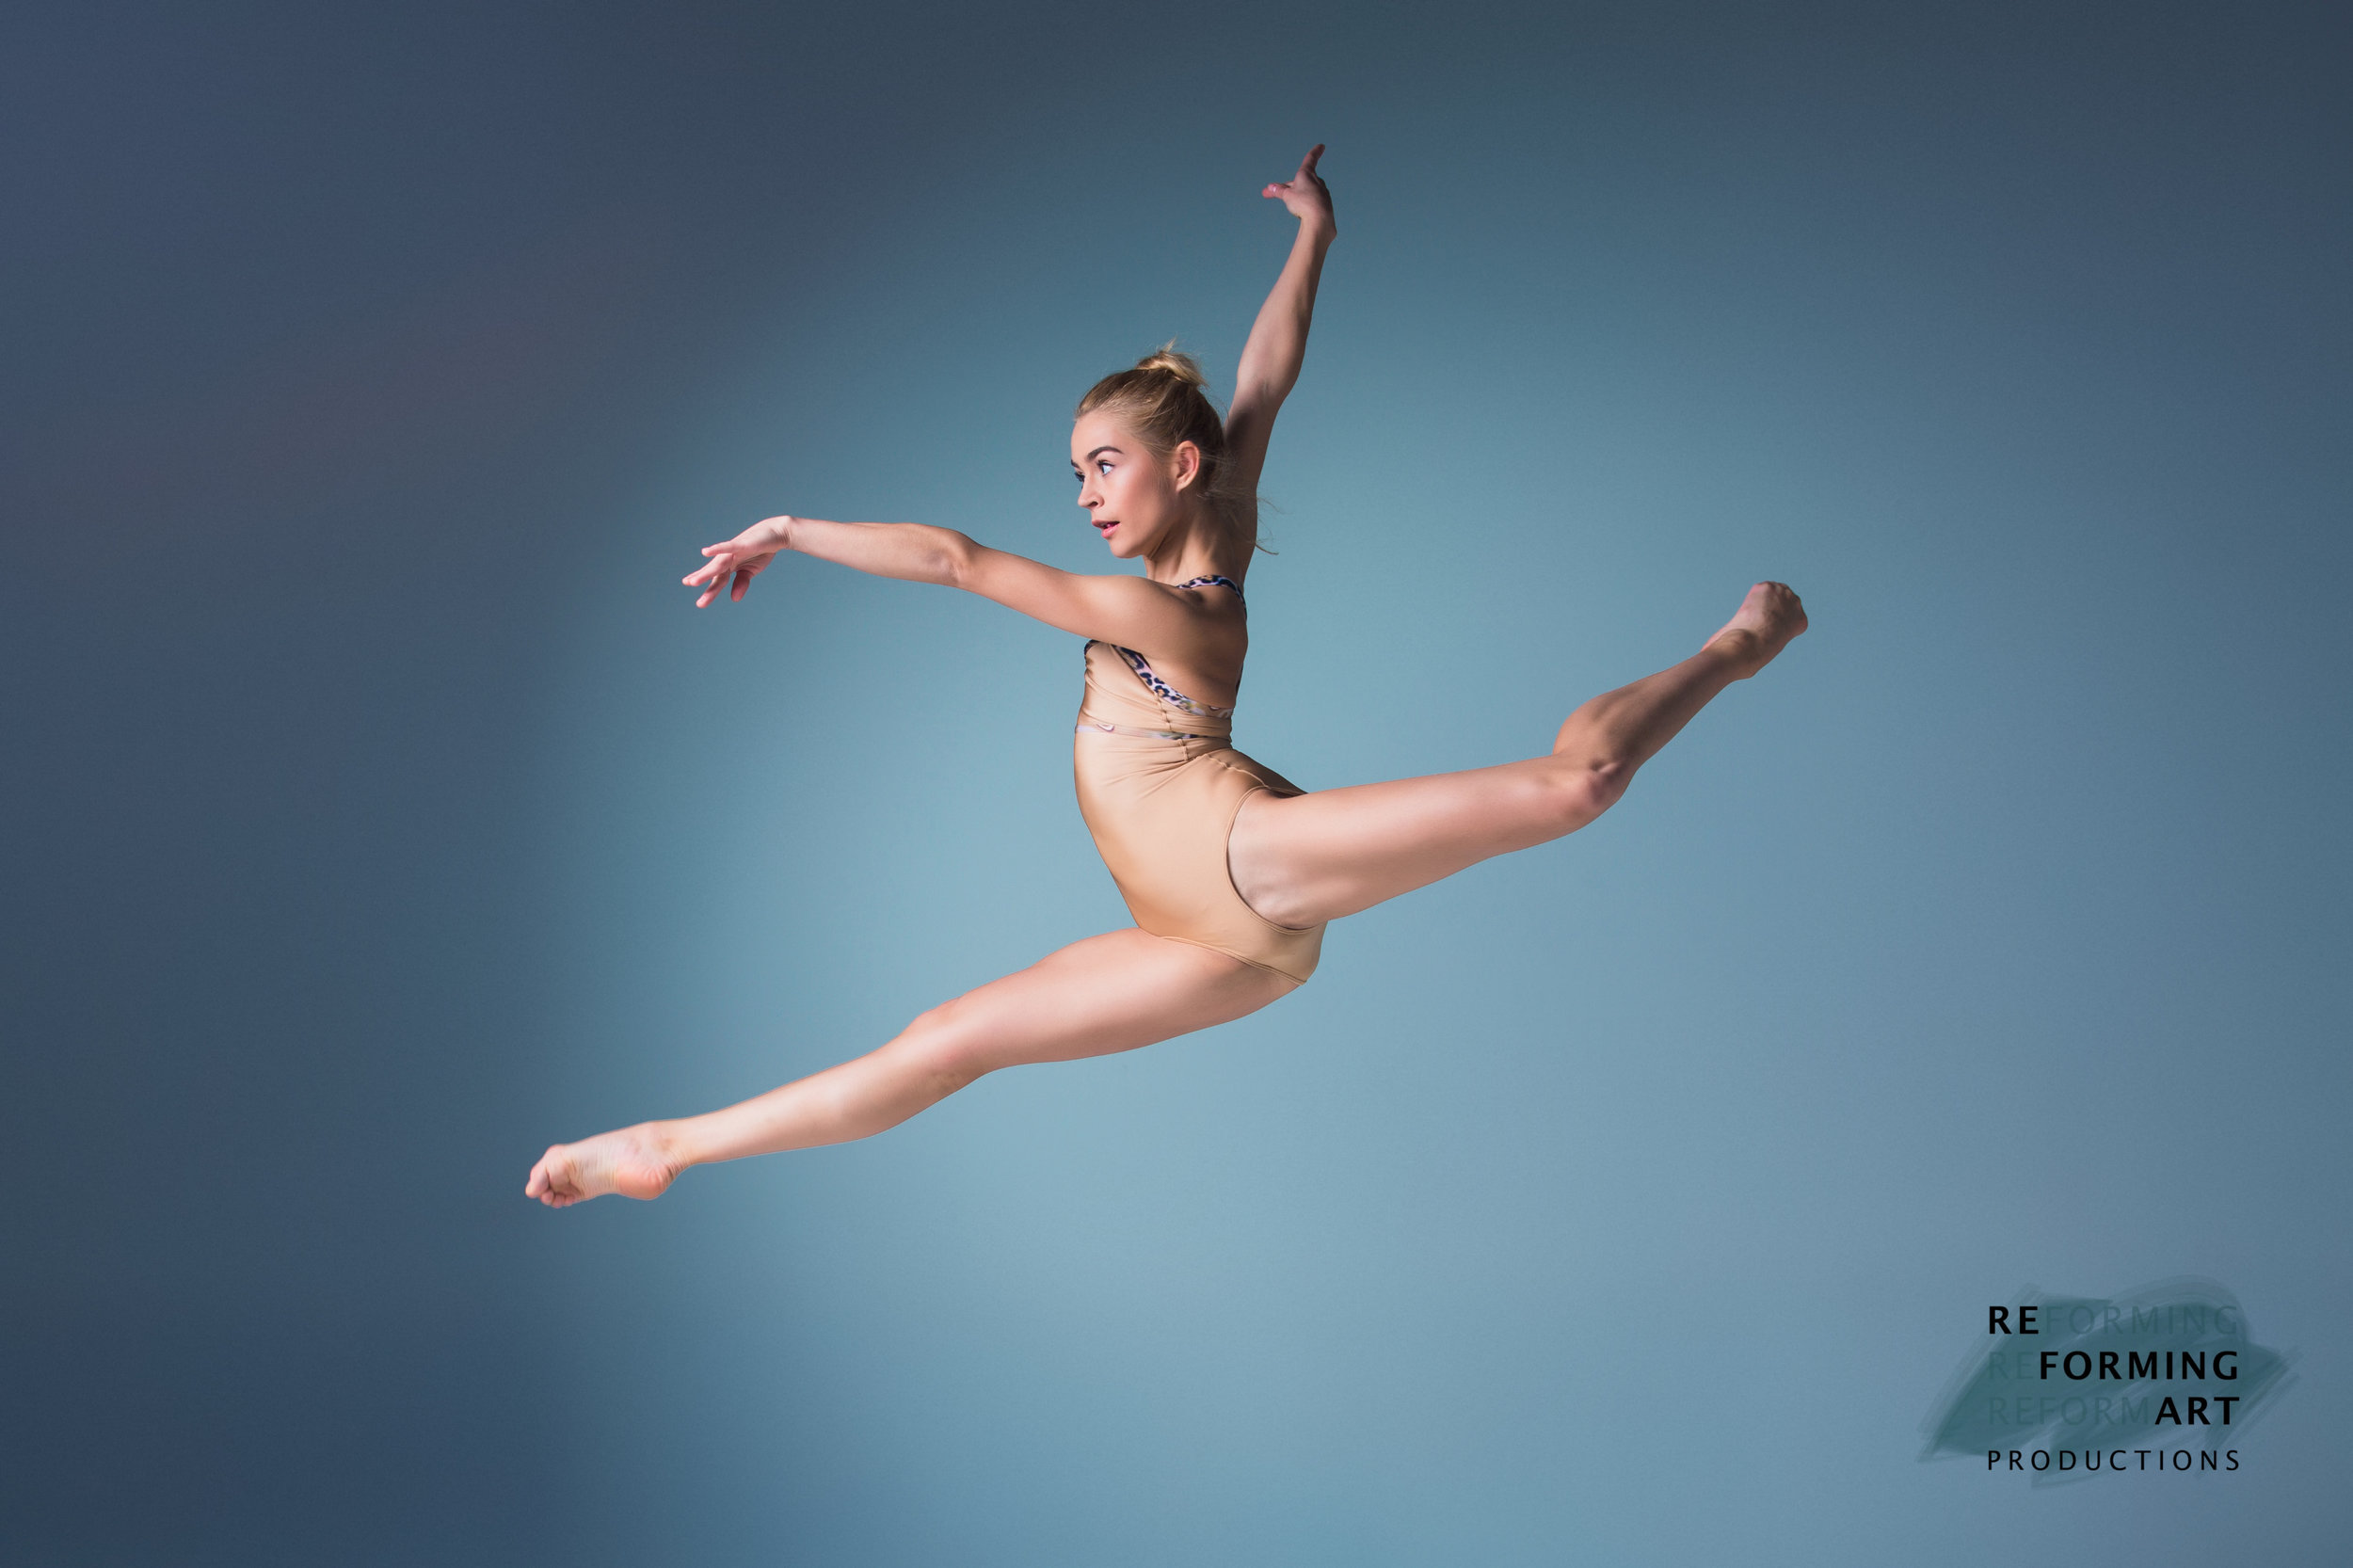 Young-beautiful-modern-style-dancer-jumping-on-a-studio-background-507247572_5401x3601.jpg